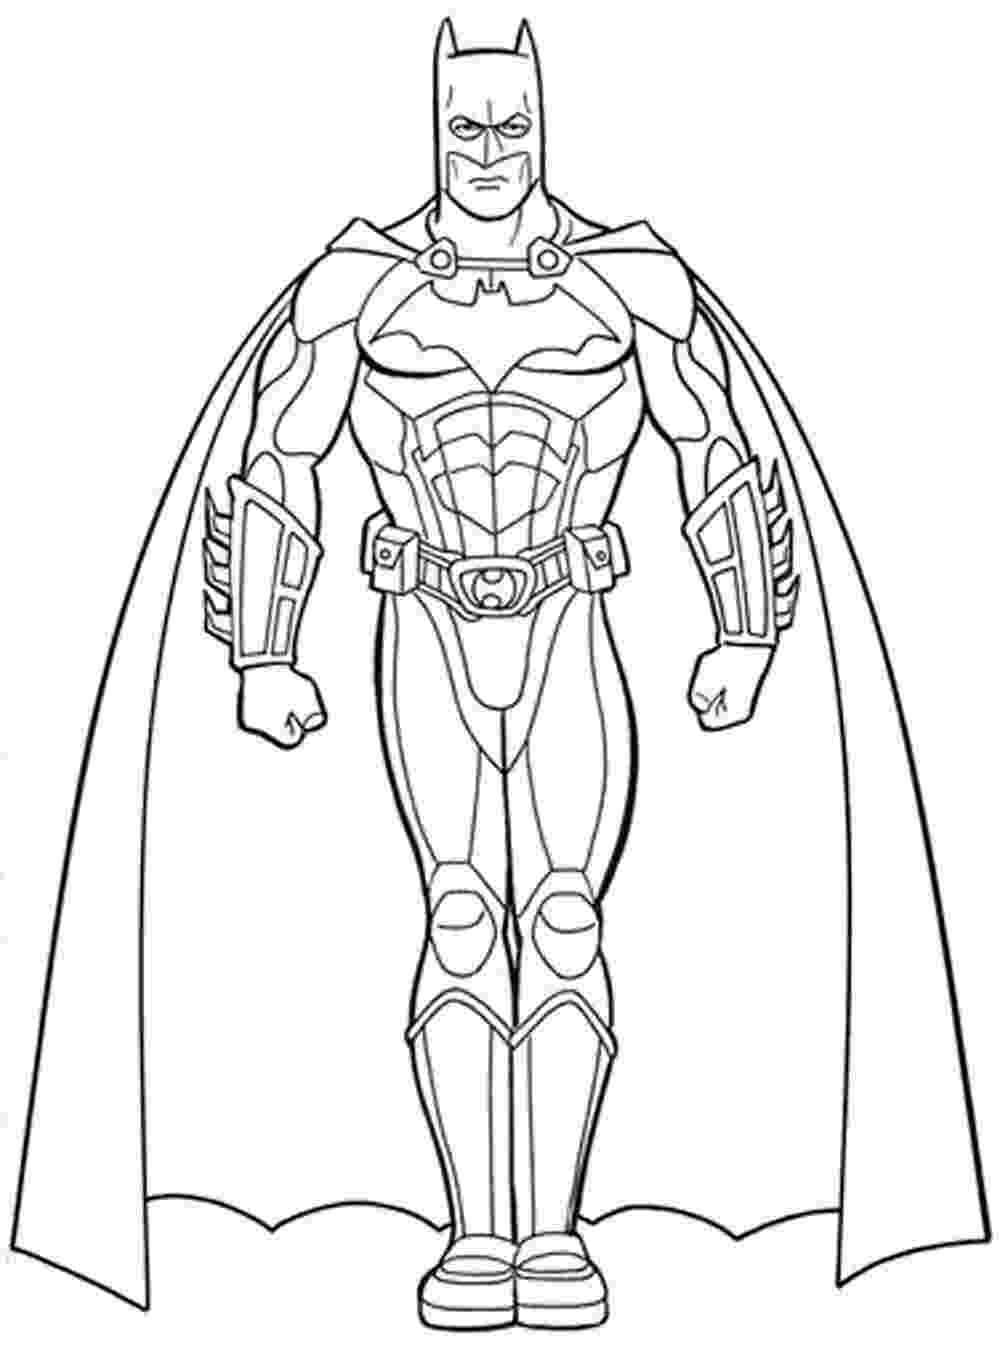 batman printable coloring pages batman free downloadable coloring pages batman printable